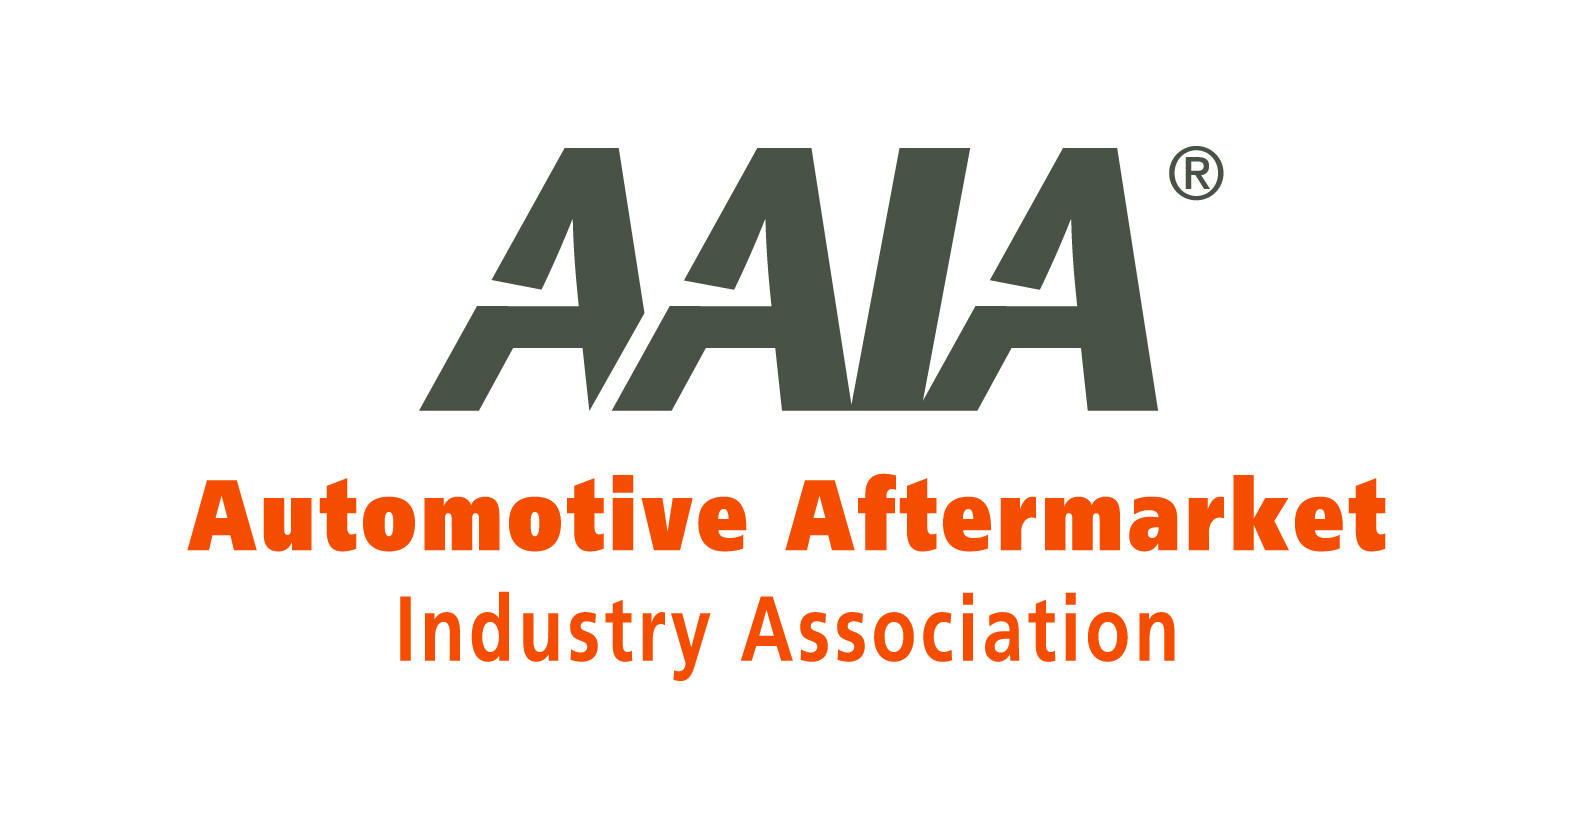 AAIA (Automotive Aftermarket Industry Association)